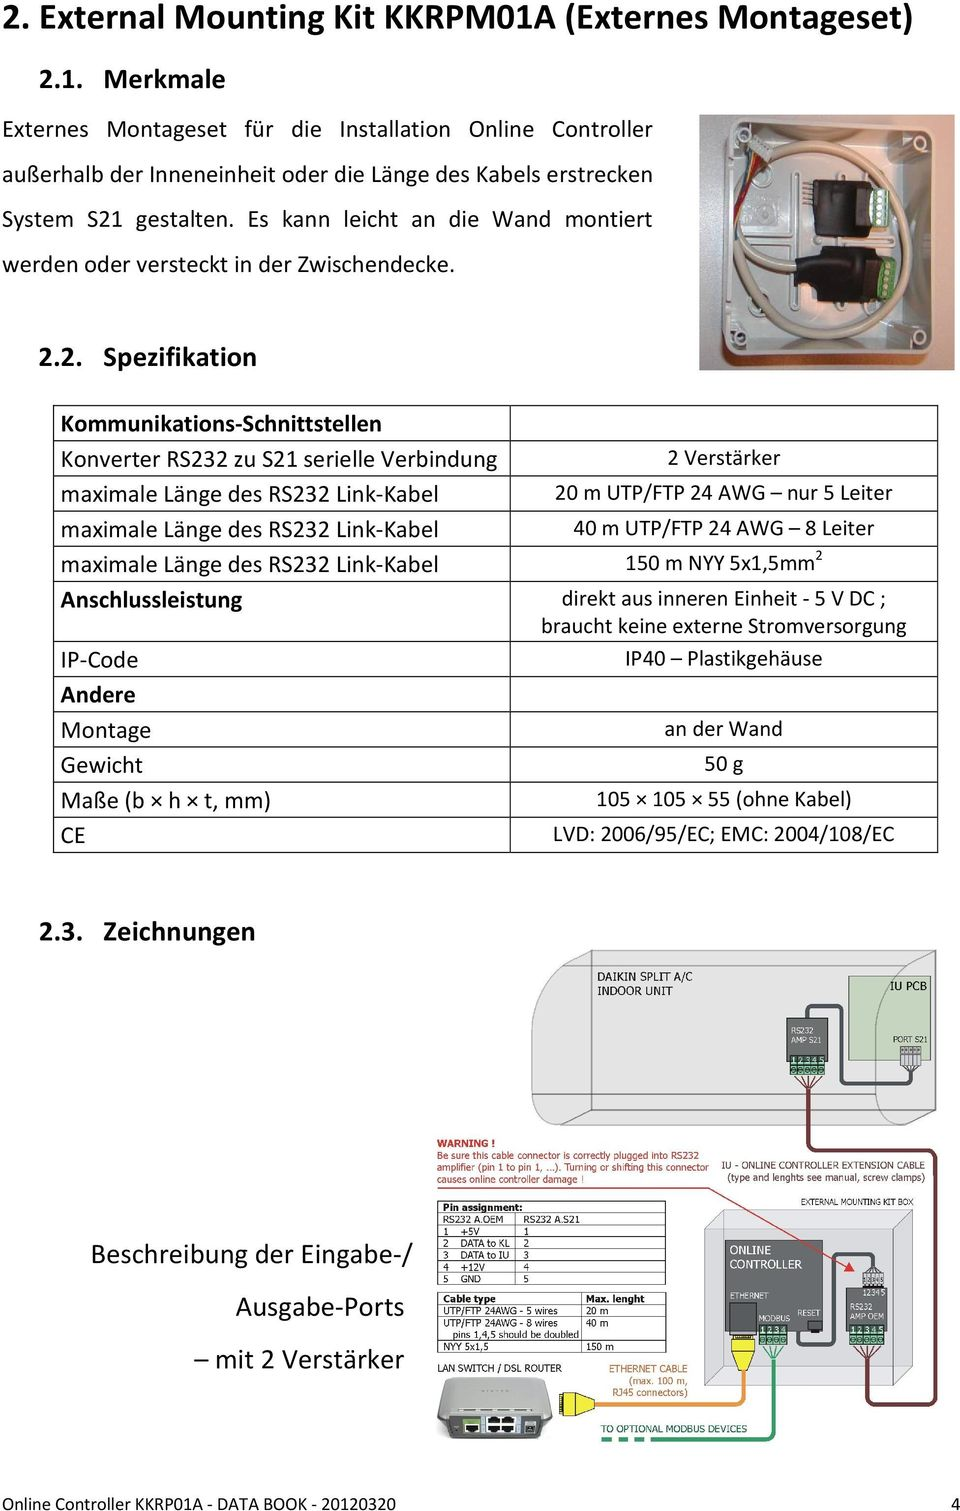 Air-conditioner network controller and accessories - PDF